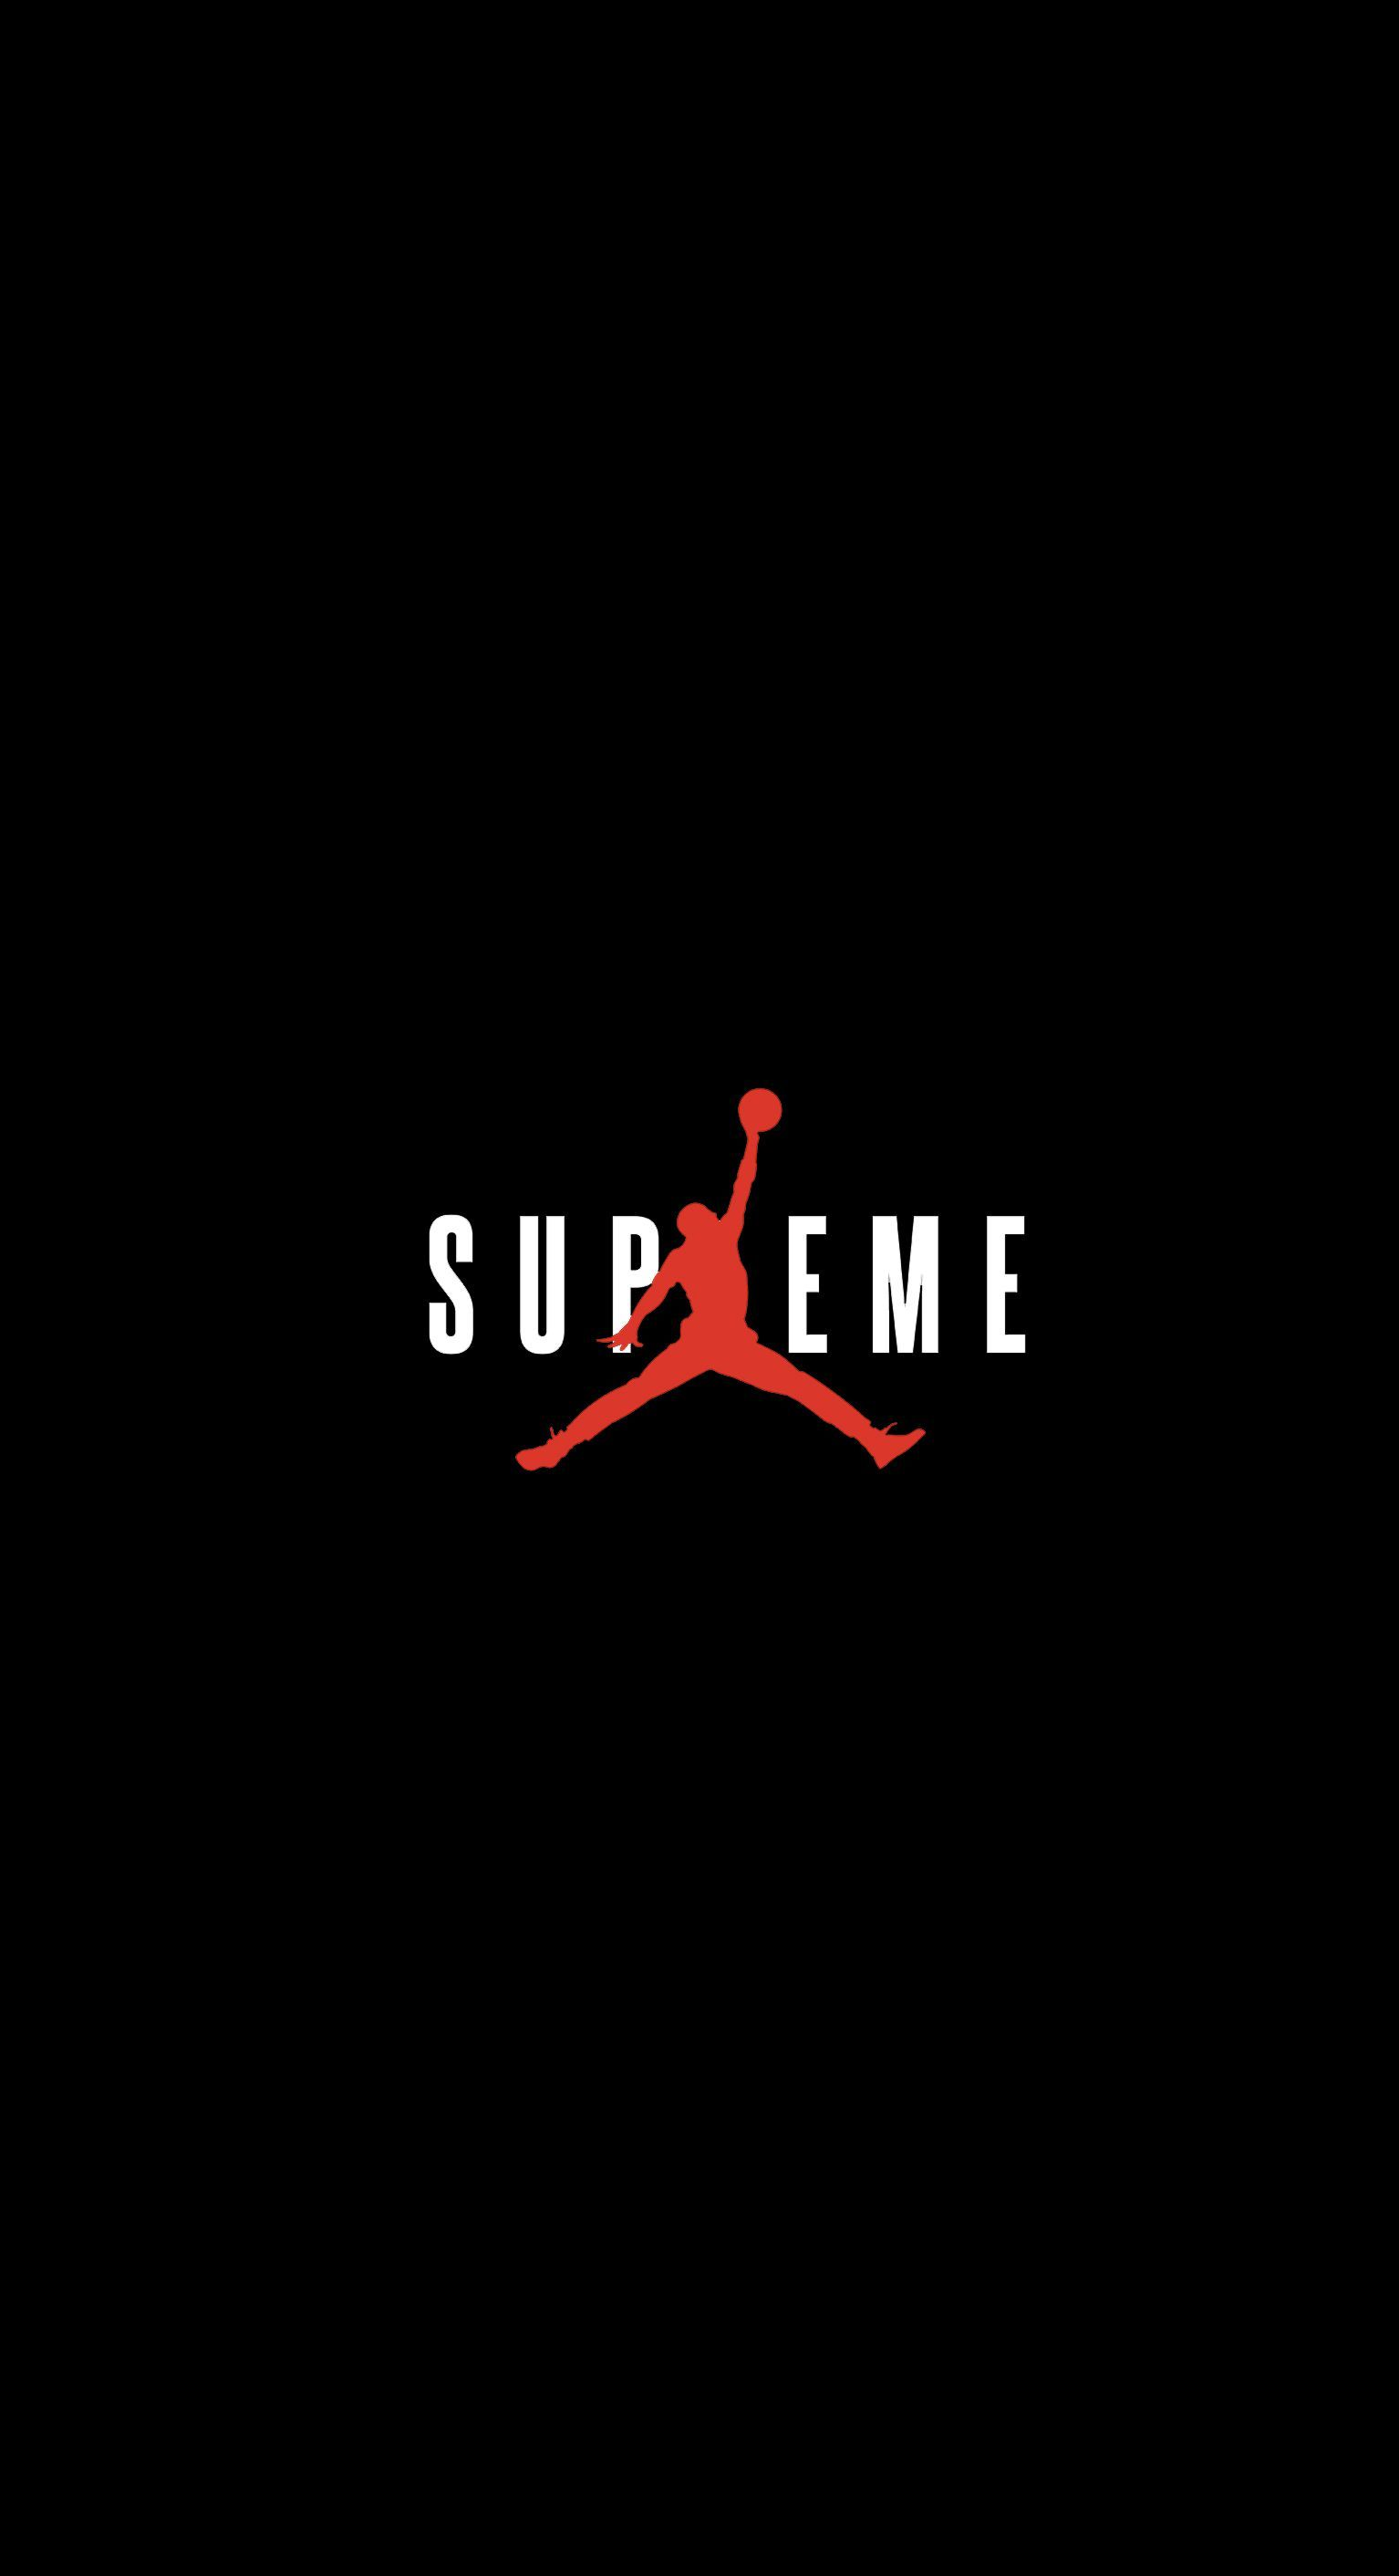 681ef93386c4 Supreme x Jordan Wallpaper : streetwear - Streetwear Wallpapers - Wallpaper  Zone